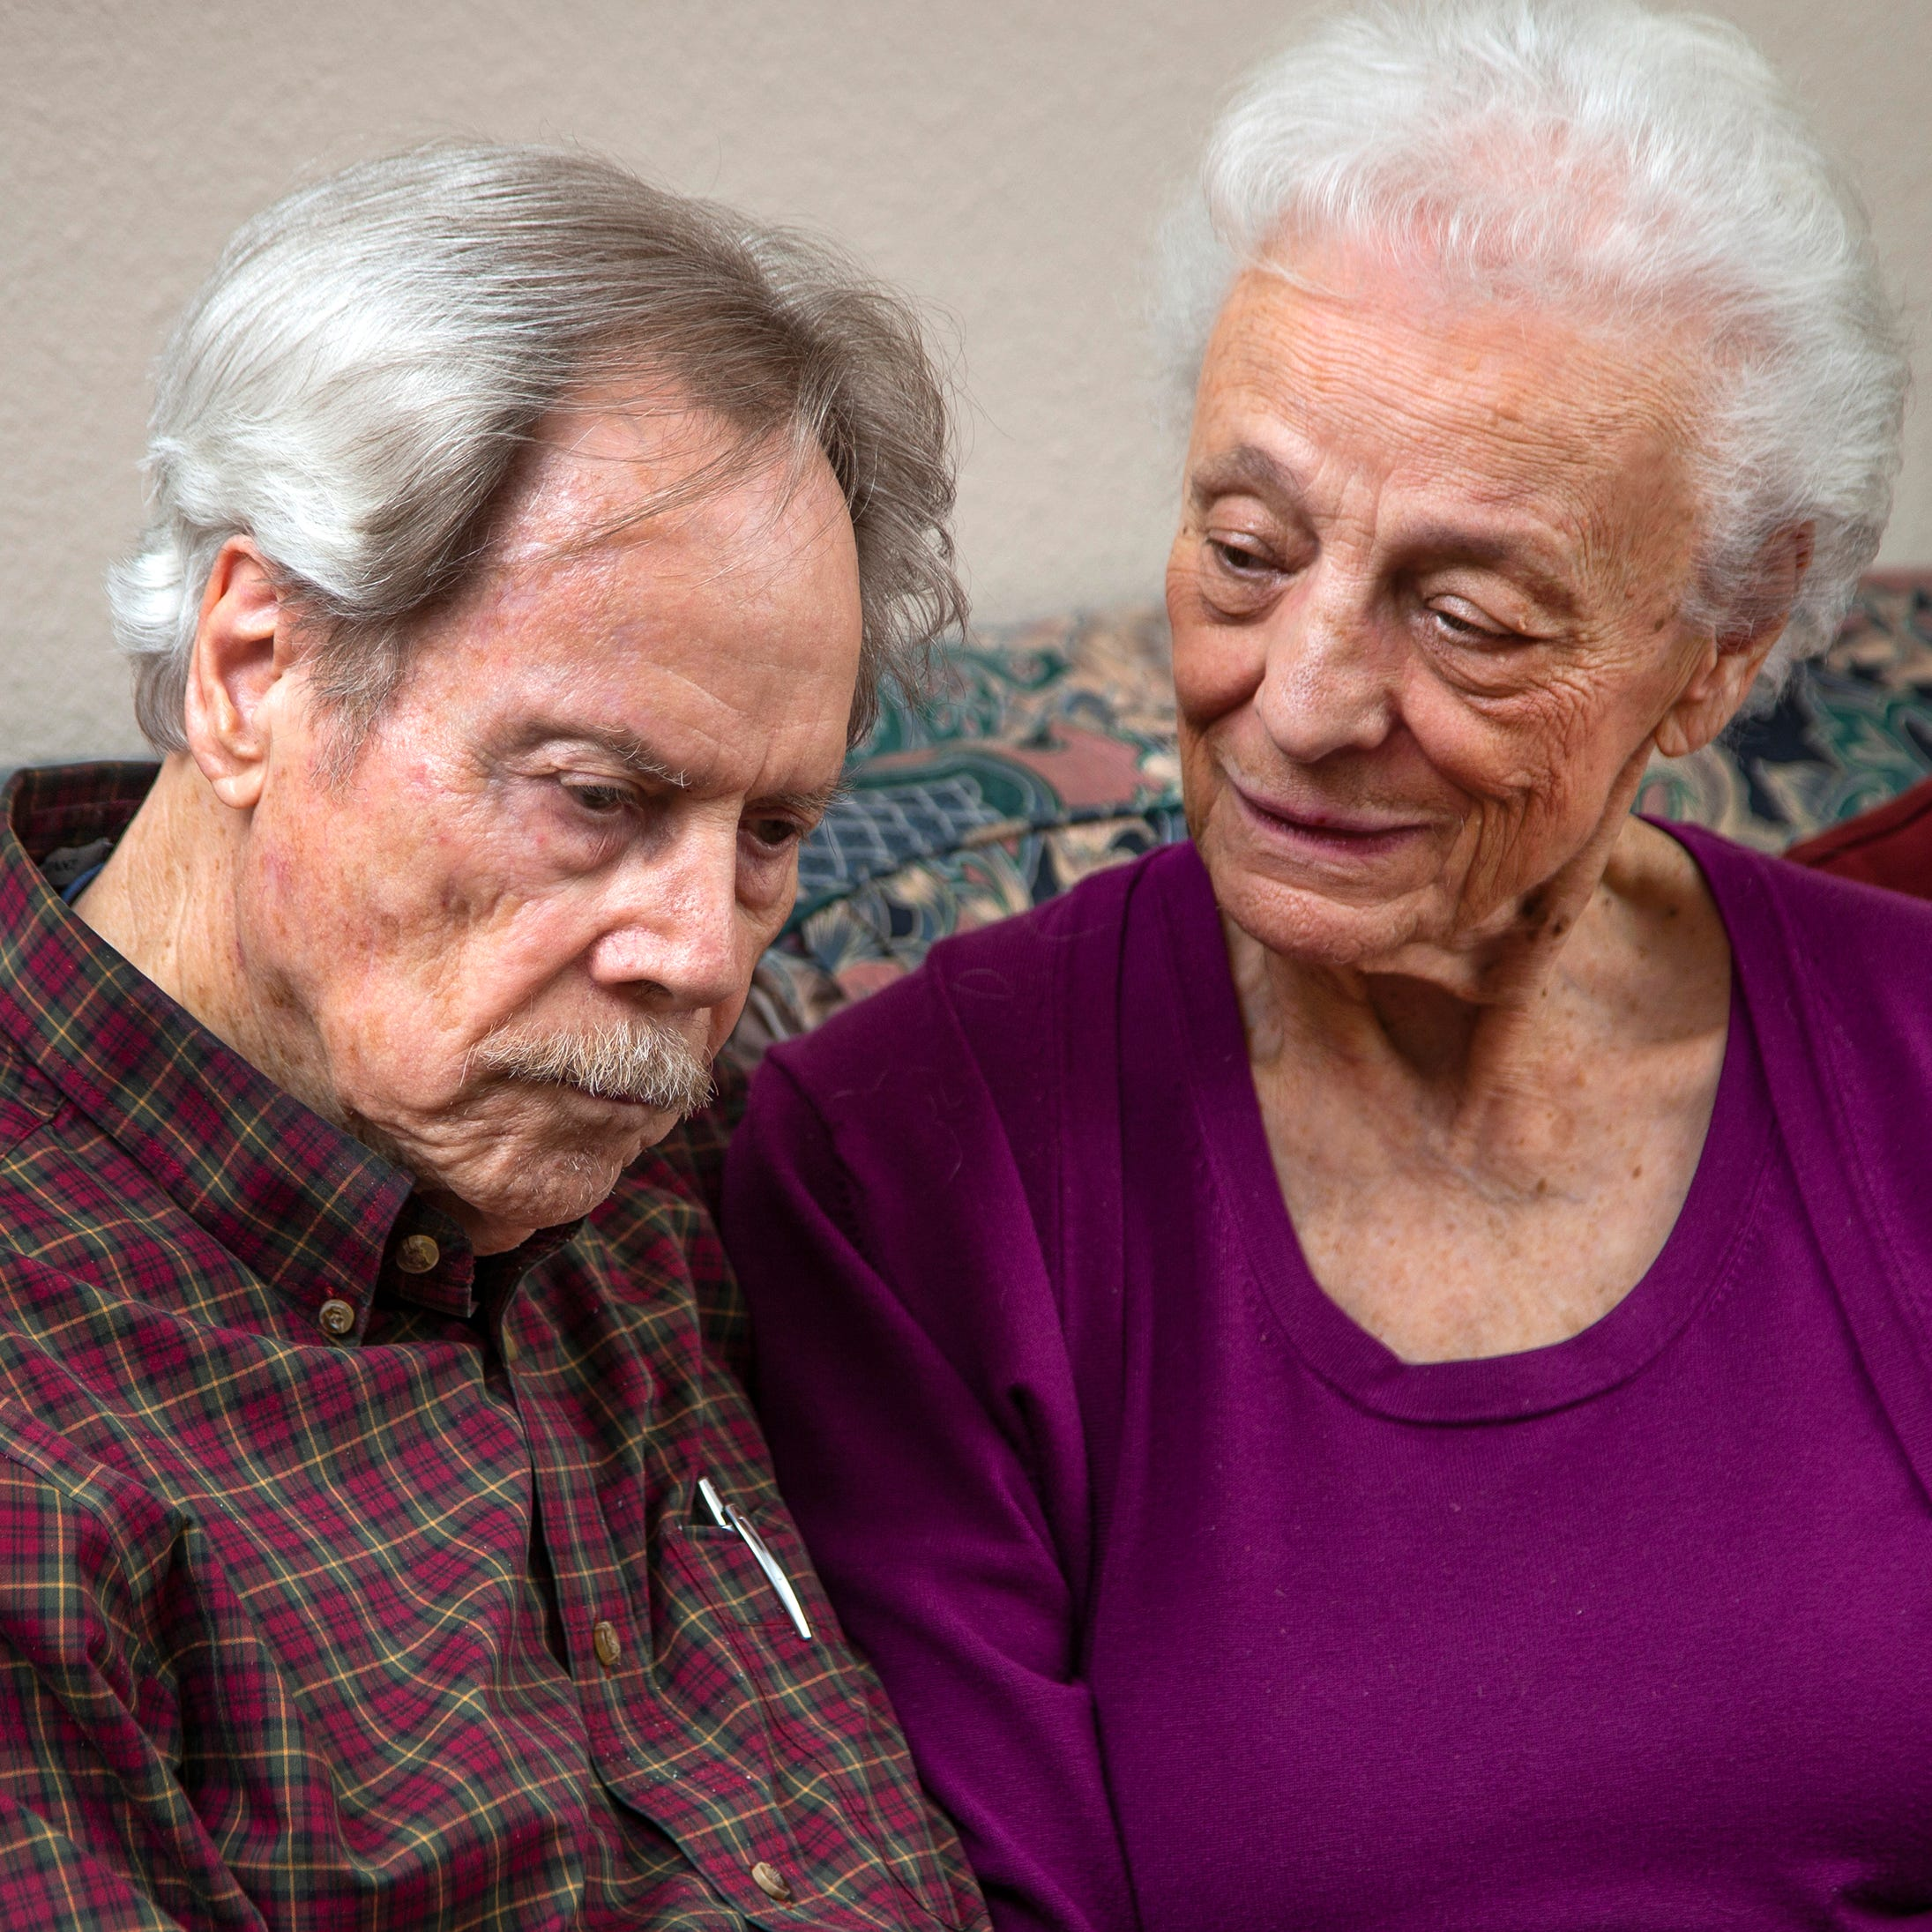 Company convinces Arizona couple, nearly 90 years old, to buy $150,000 timeshare